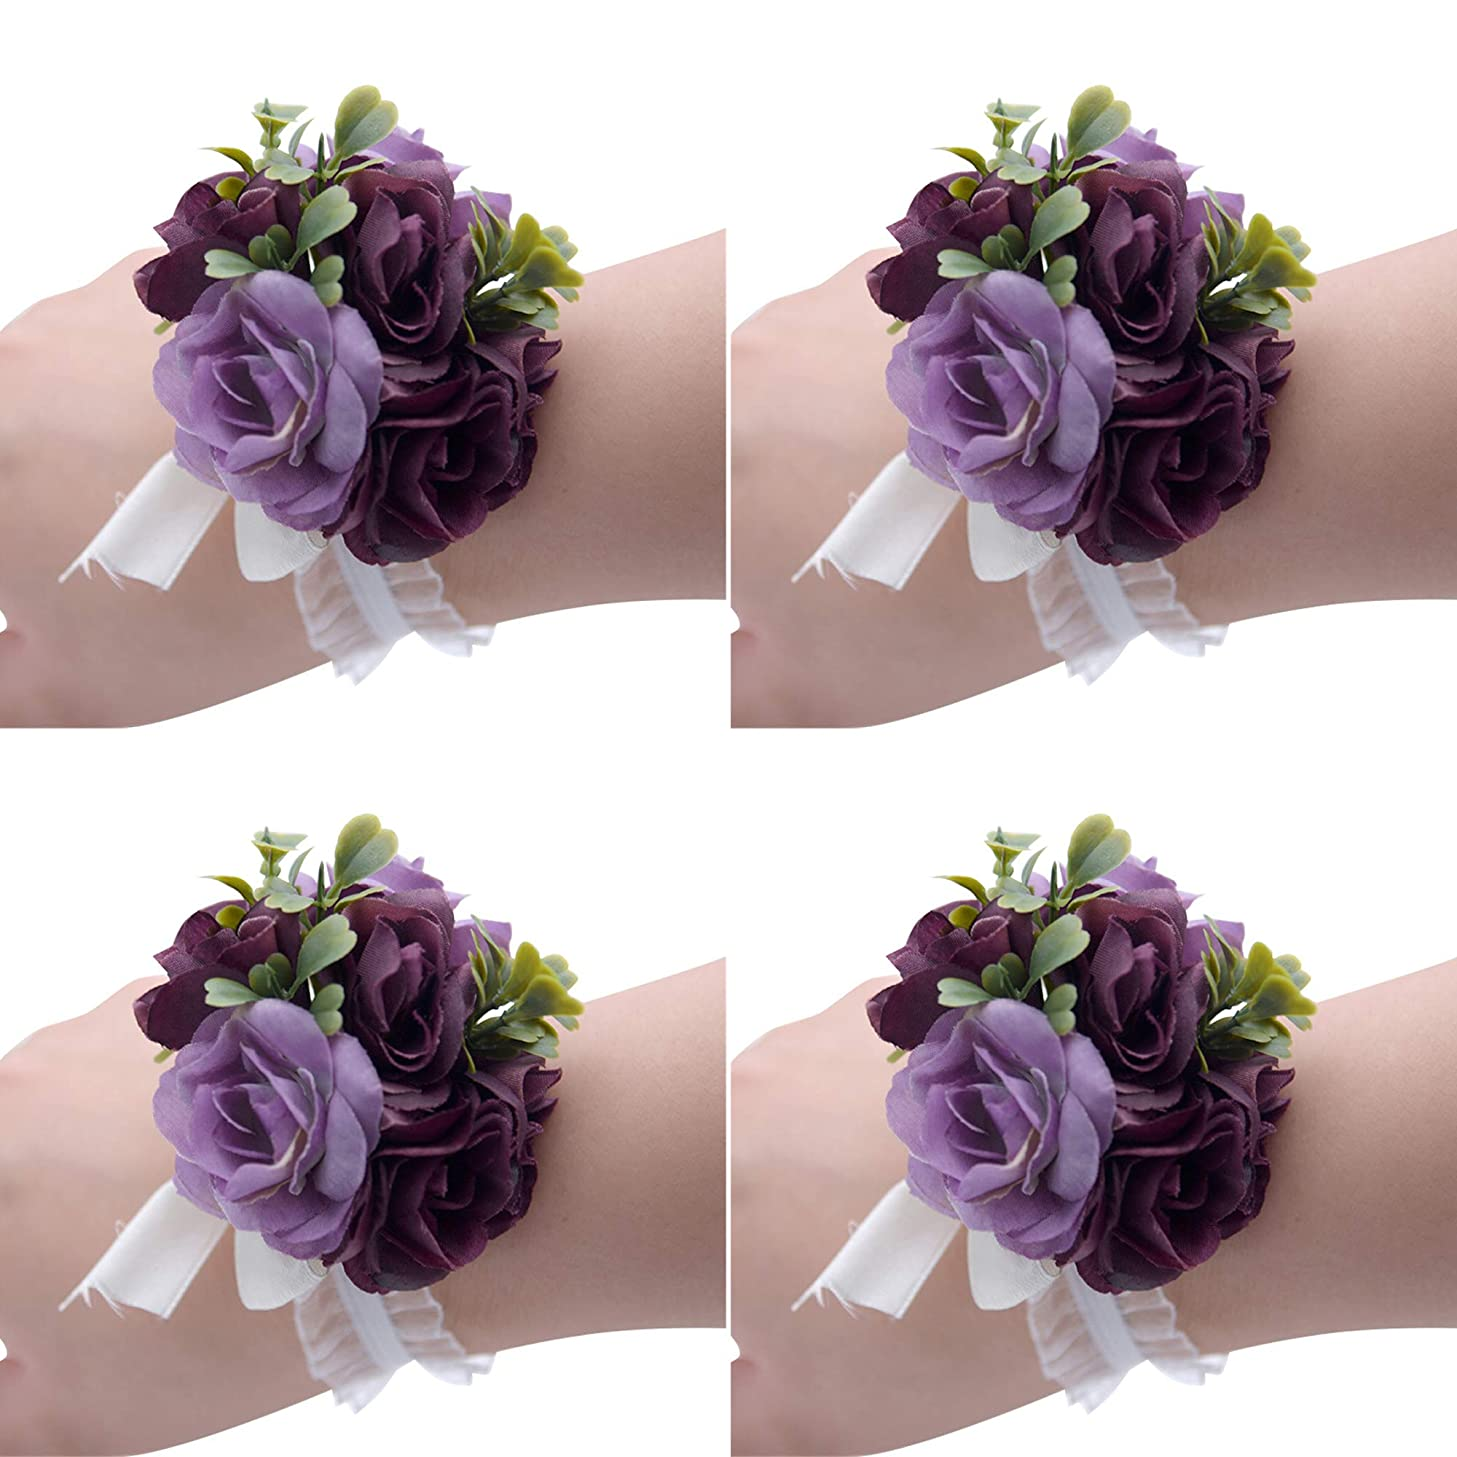 Florashop Fabric Small Roses Wedding Bridal Corsage Bridesmaid Wrist Flower Corsage Flowers Pearl Bead Wristband for Wedding Prom Party Homecoming 4 pcs-Violet Wrist Corsage